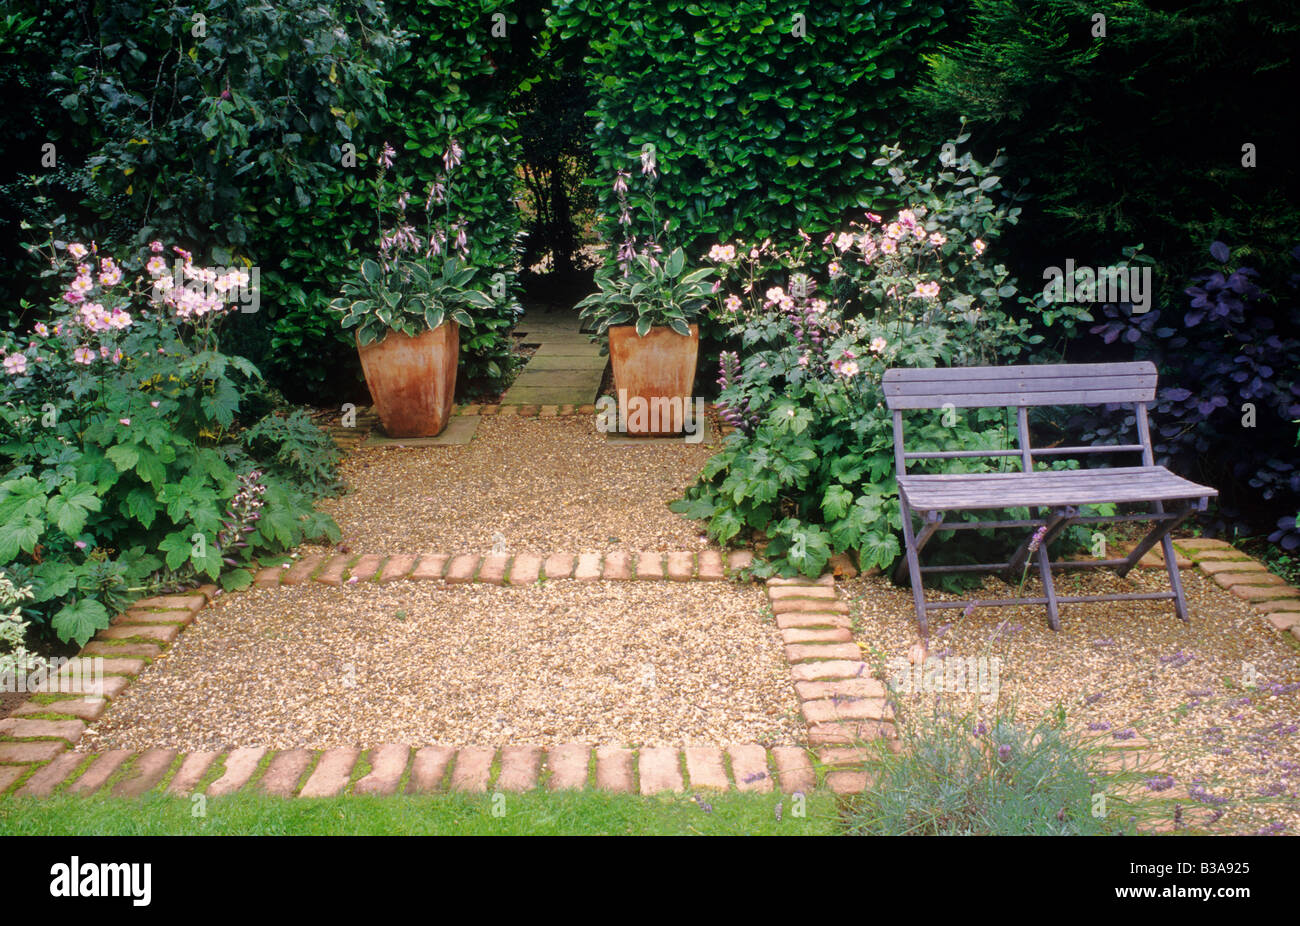 Garden Furniture On Gravel terracotta planters with hosta, brick gravel path blue painted